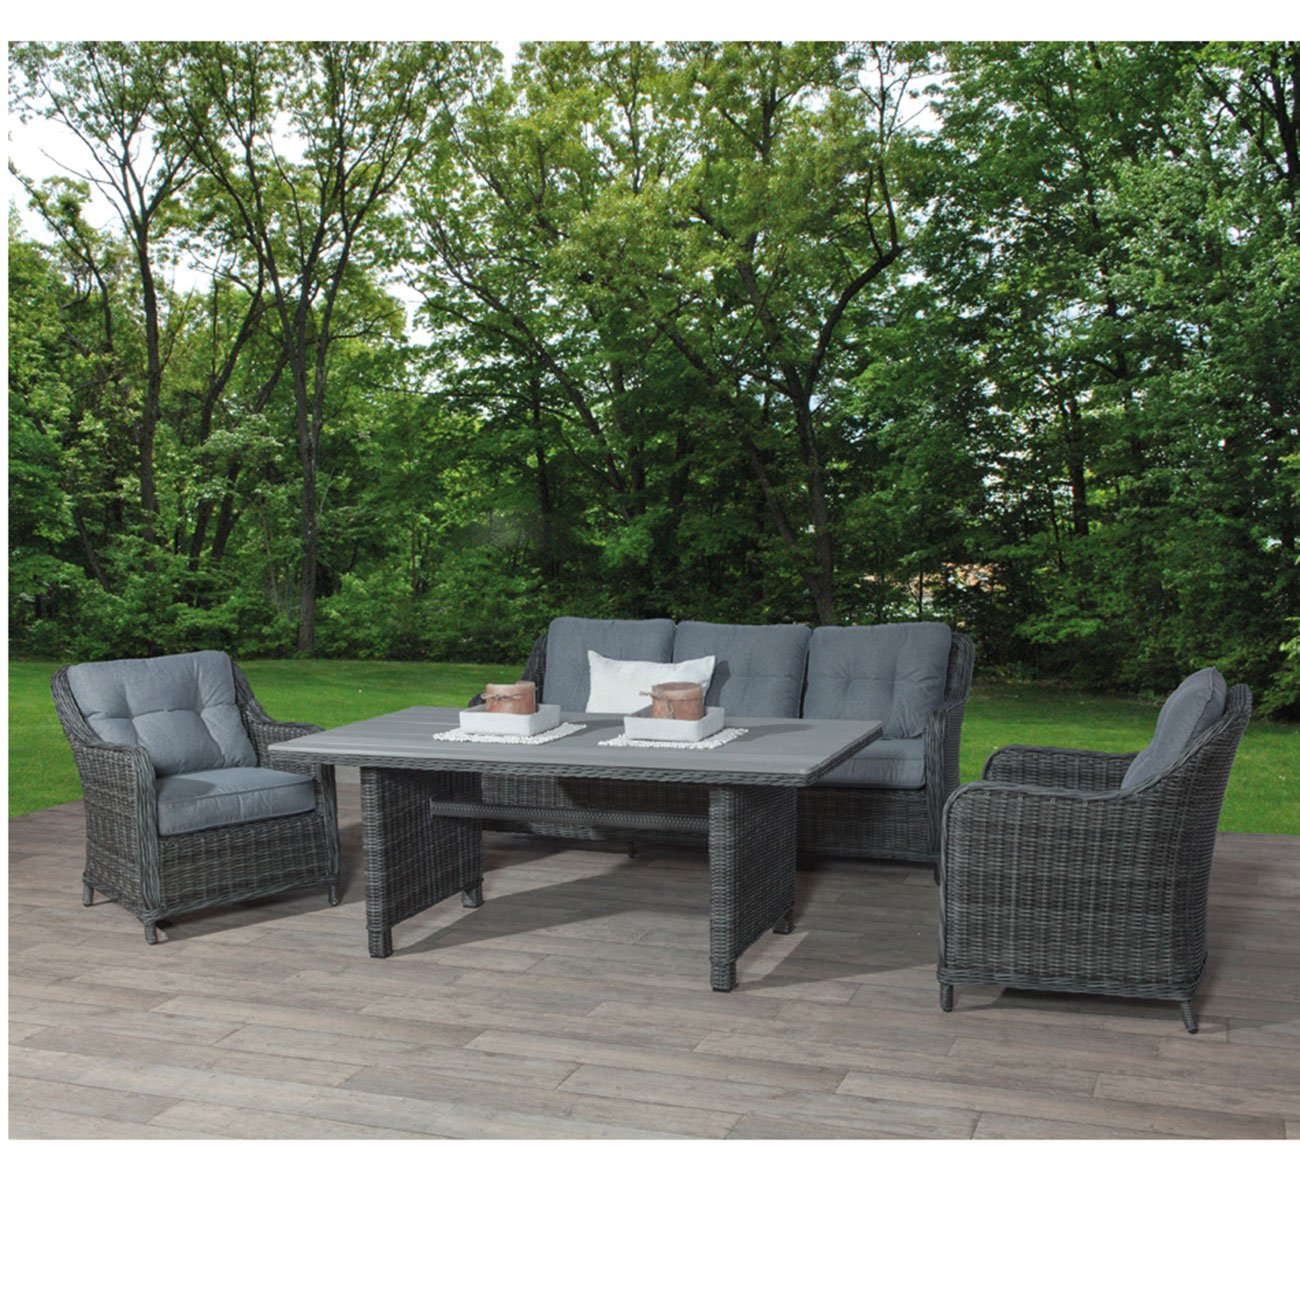 dining lounge set outliv milwaukee essgruppe garten. Black Bedroom Furniture Sets. Home Design Ideas